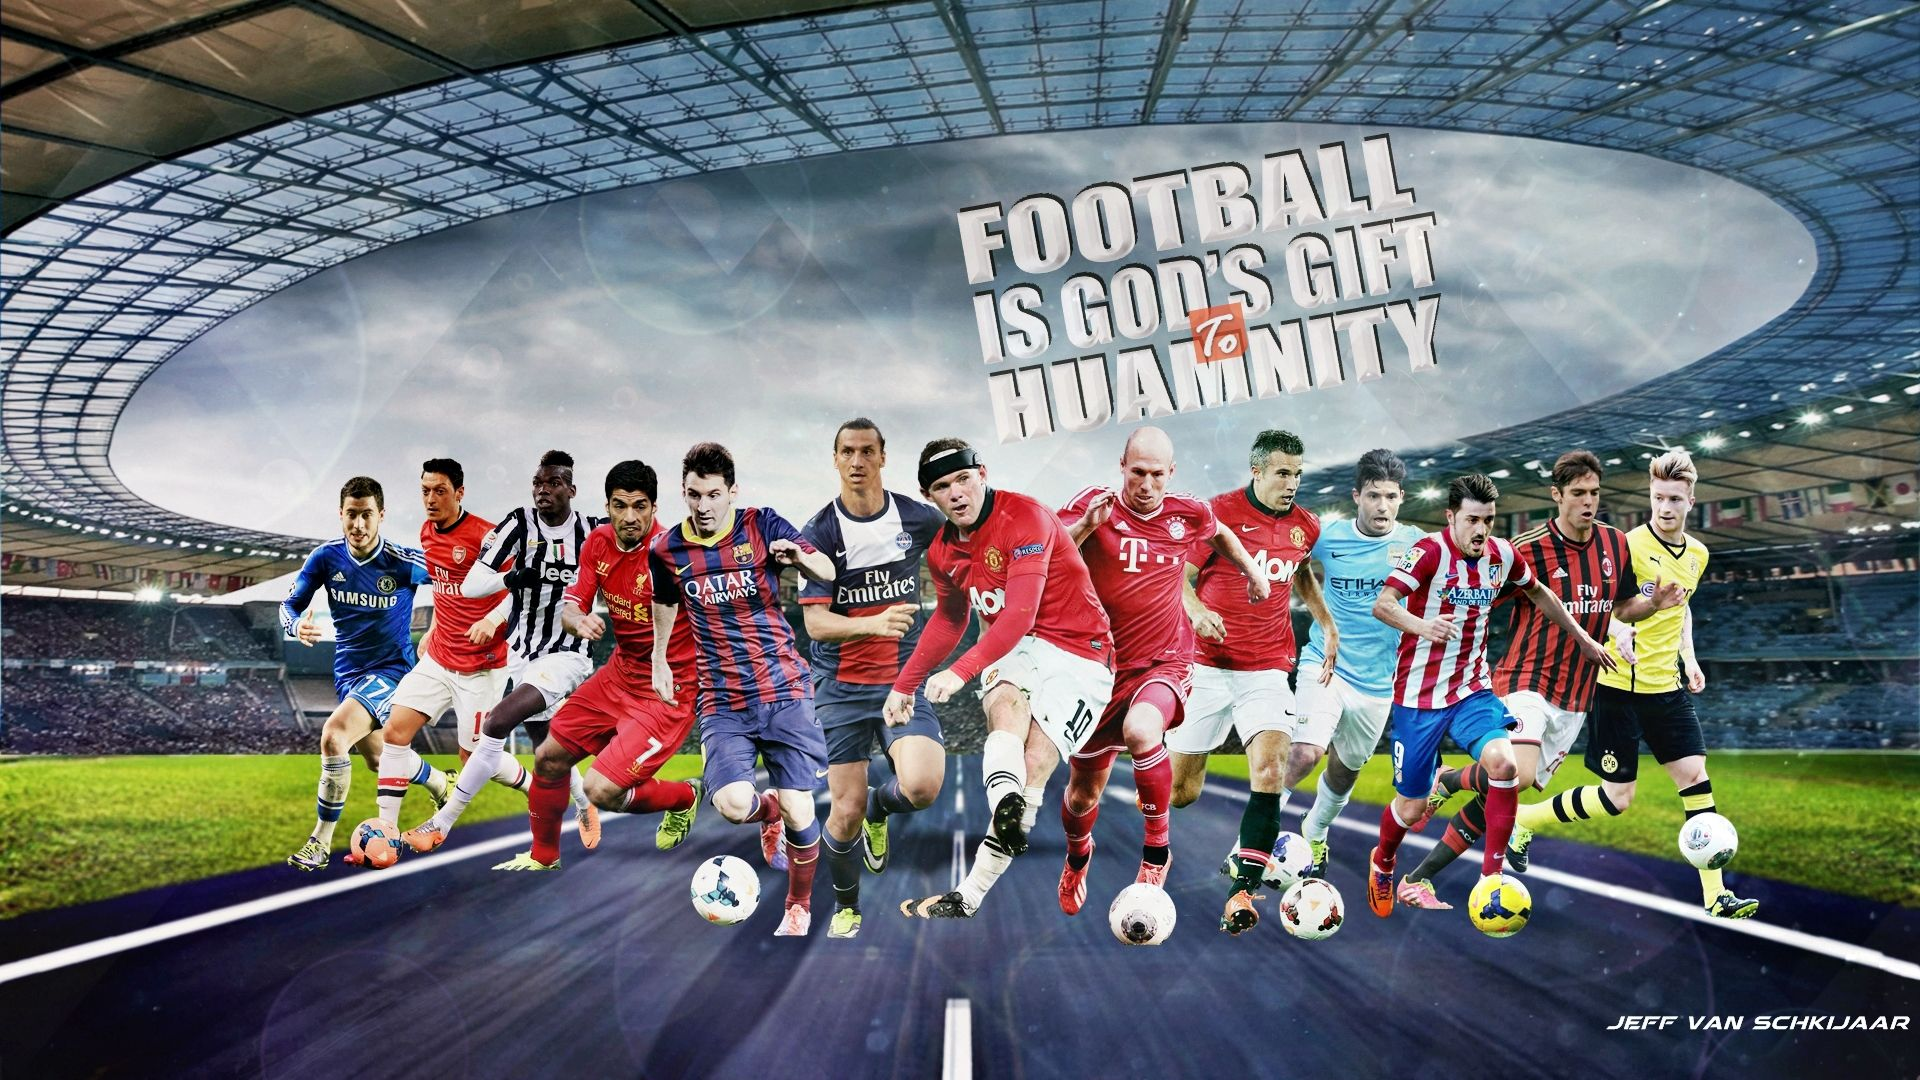 The Wallpapers Football